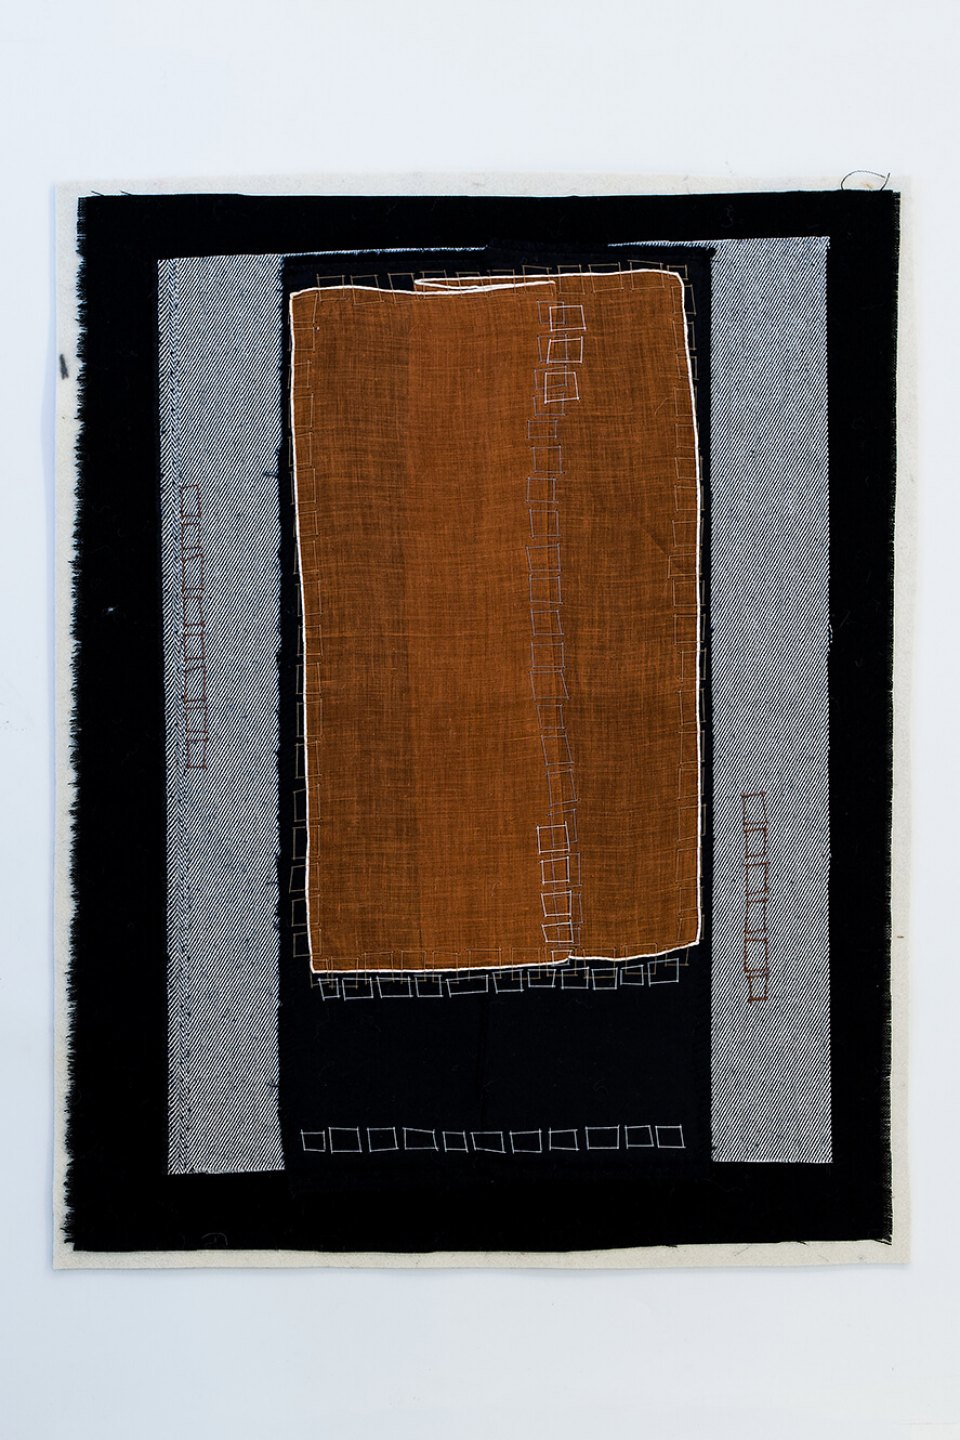 f.marquespeteado,<em>&nbsp;Malaise neo-concretista 03</em>,&nbsp;2011, linens, cottons and wools hand-embroidered on industrial felt, 52&nbsp;×&nbsp;40 cm - Mendes Wood DM